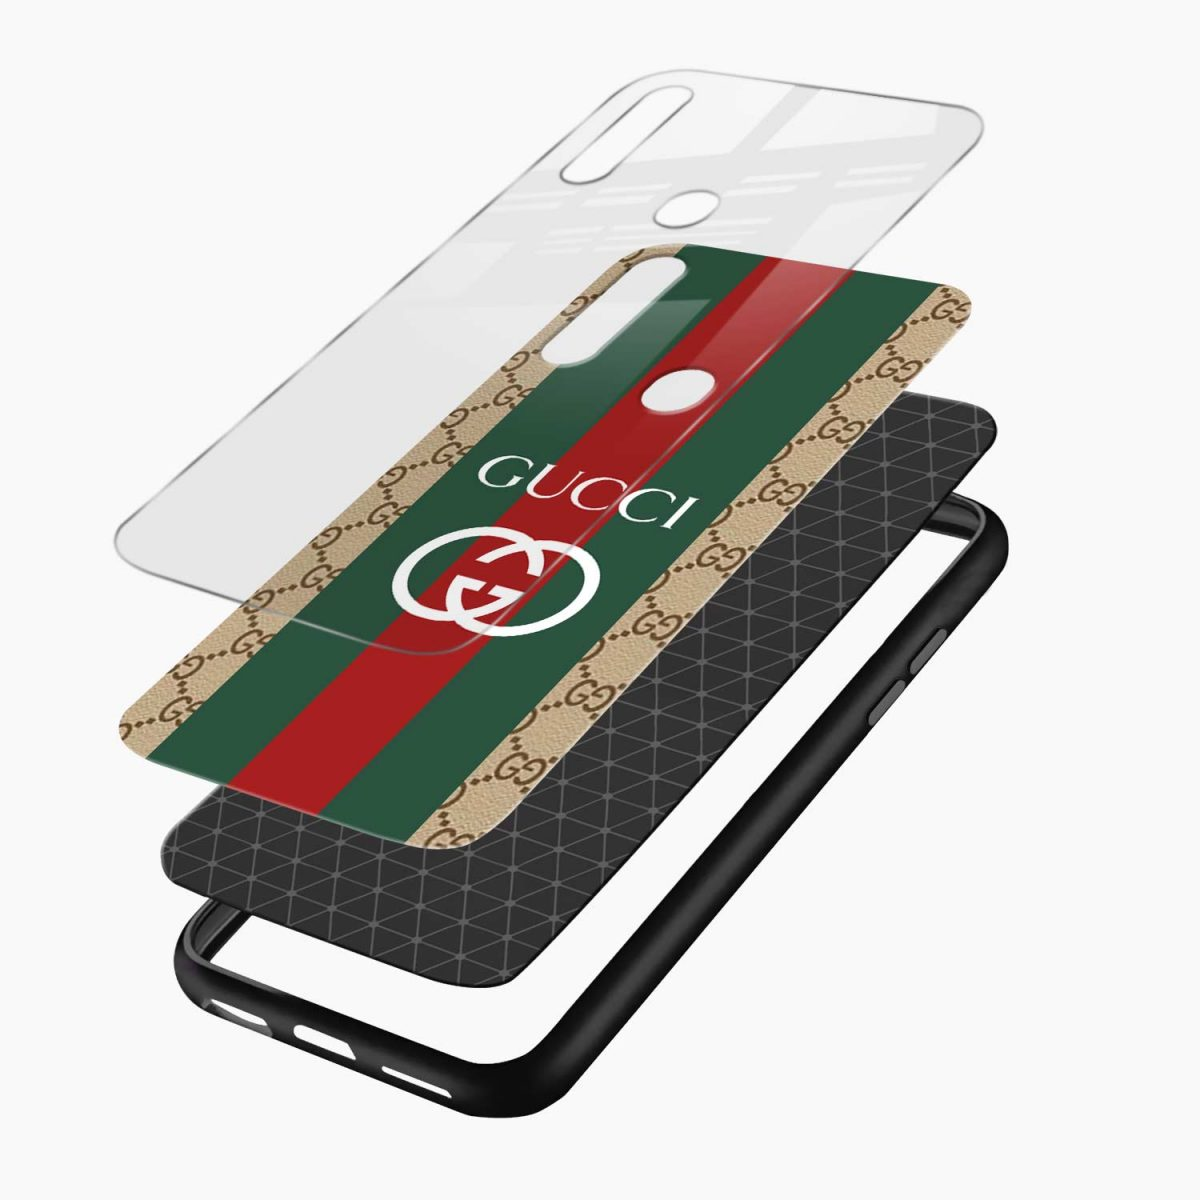 gucci strips pattern layers view oppo a31 back cover